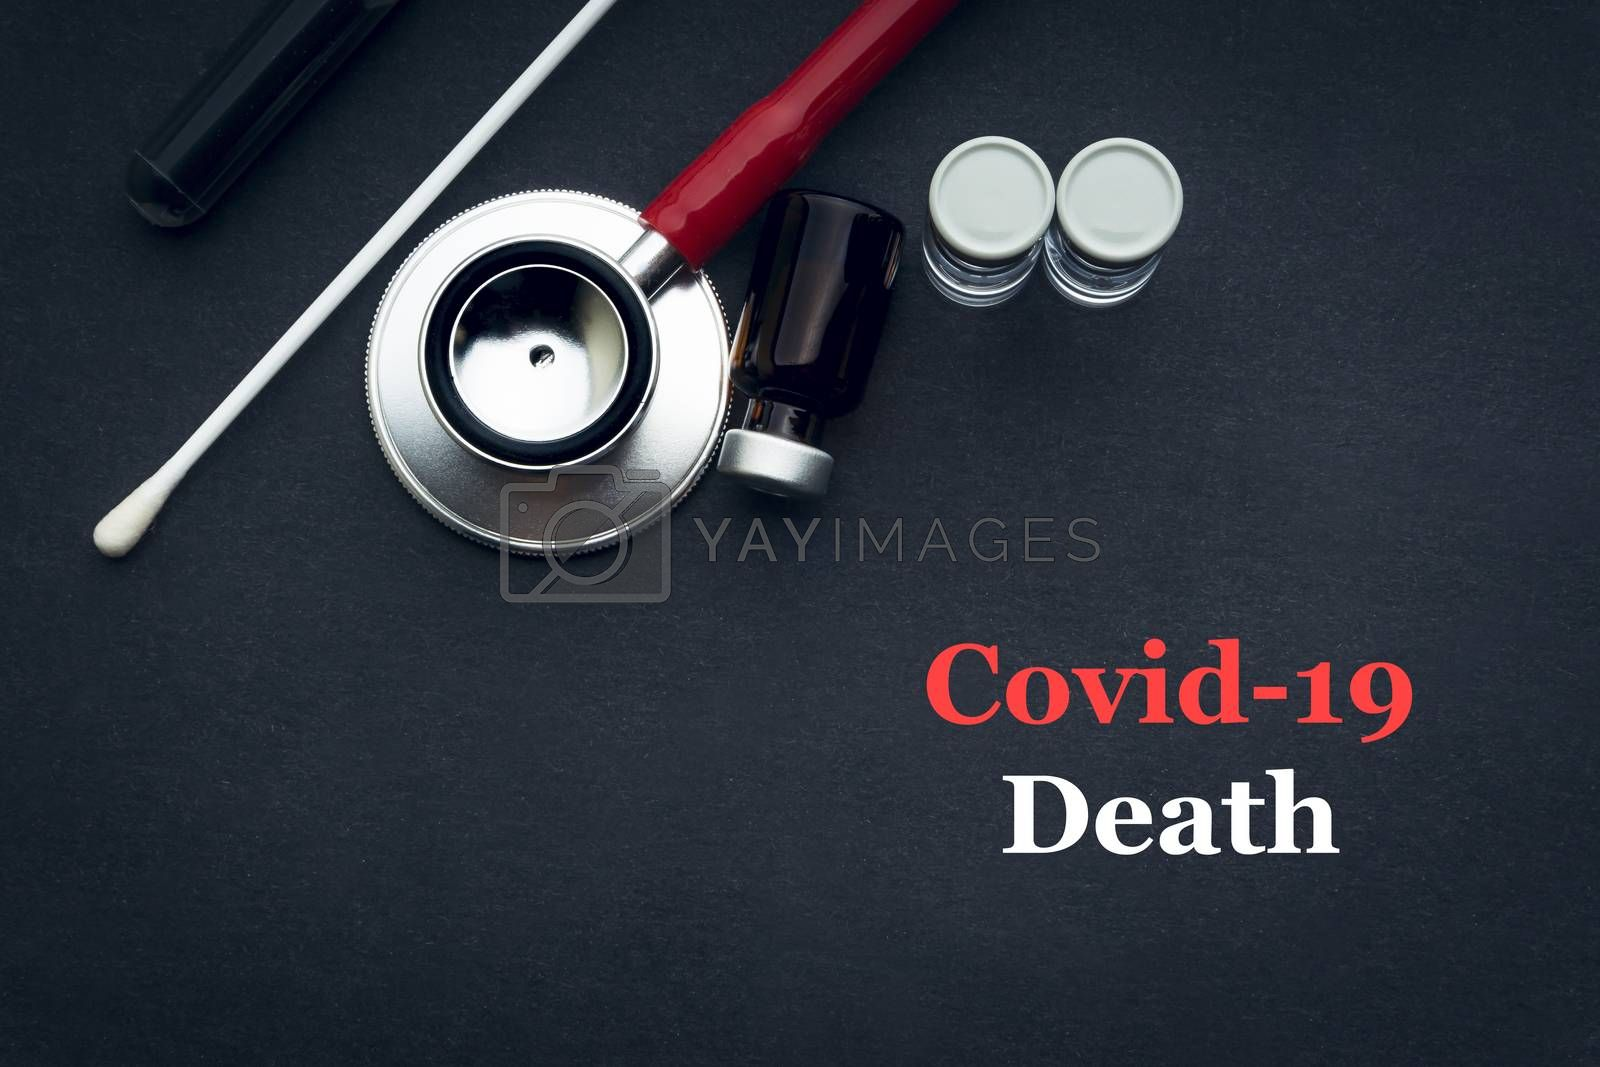 COVID-19 or CORONAVIRUS DEATH text with stethoscope, medical swab and vial on black background. Covid-19 or Coronavirus concept.